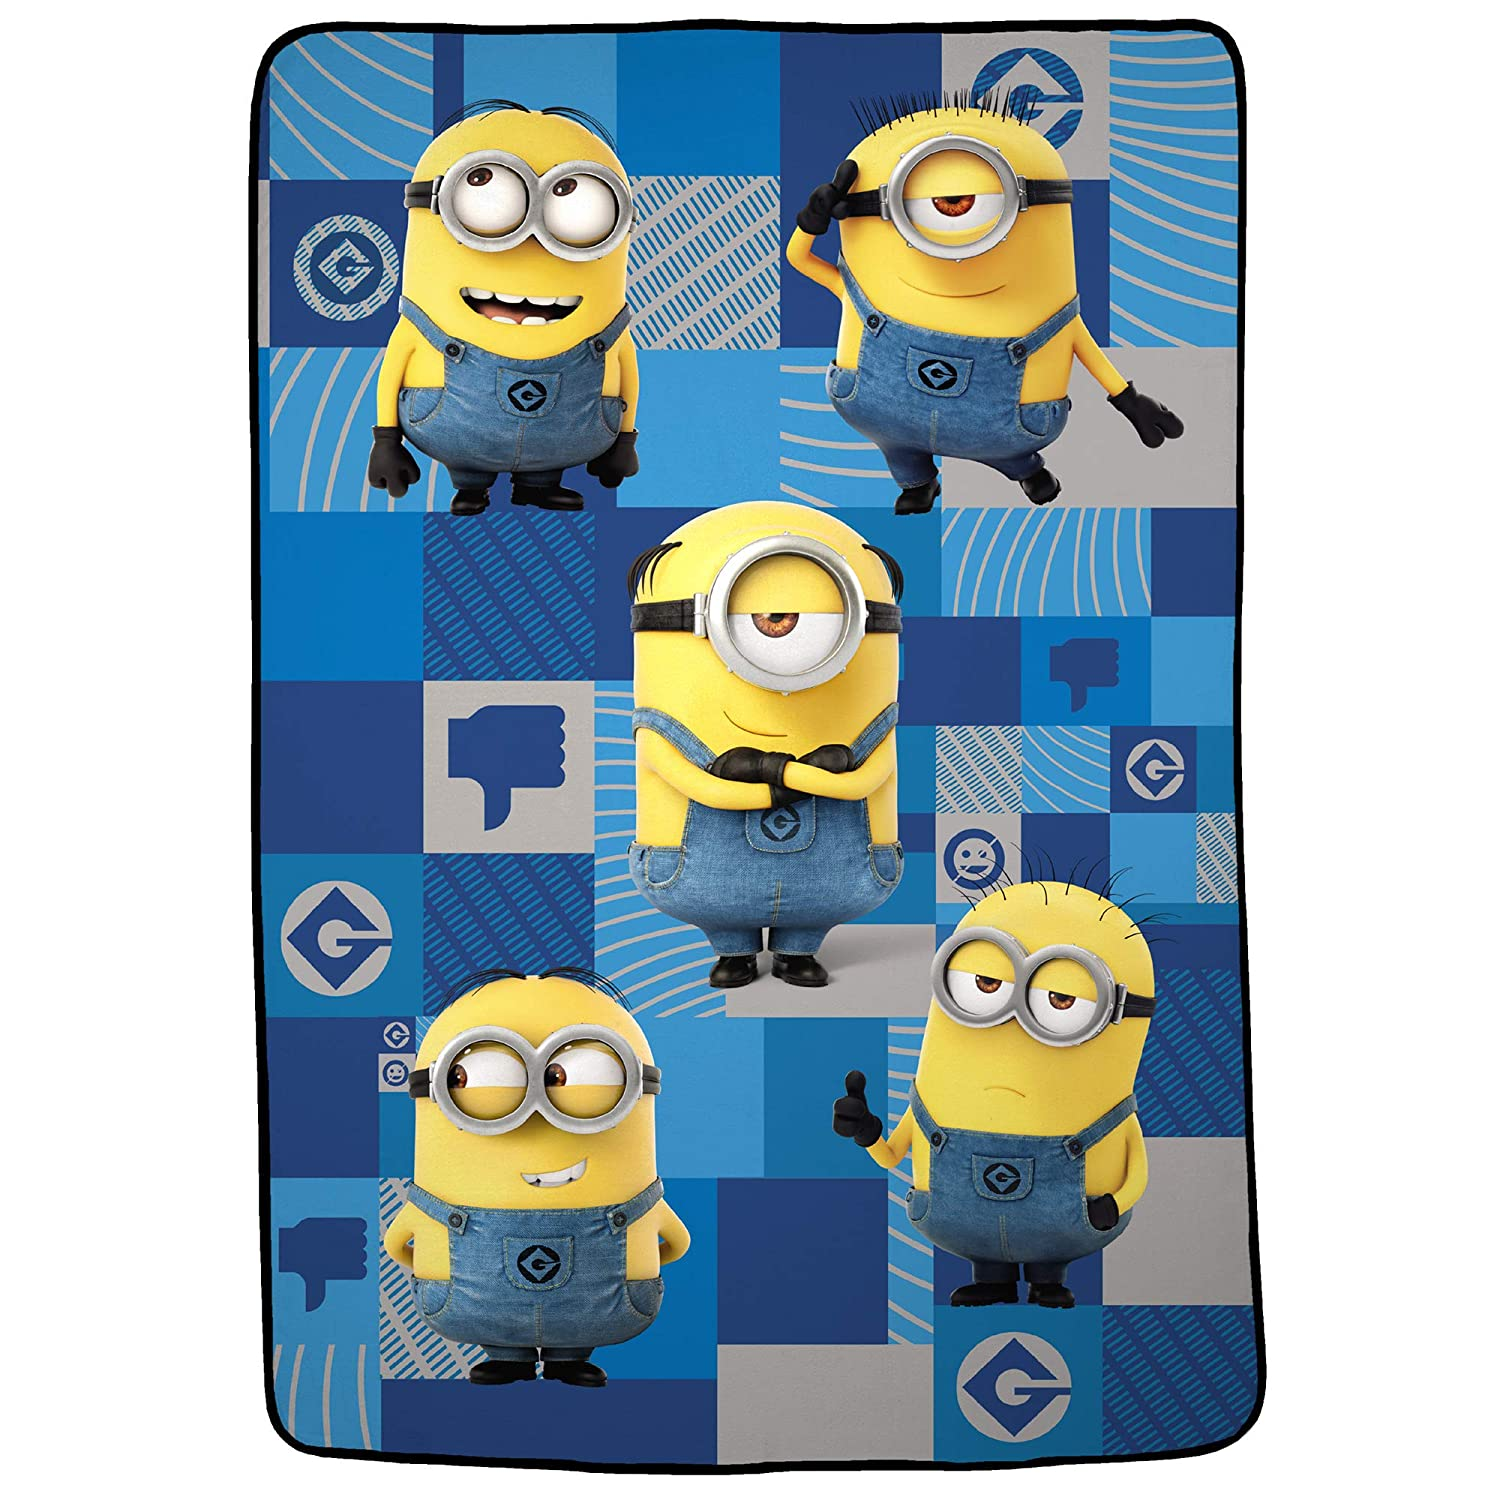 """Franco Kids Bedding Ultra Soft Plush Blanket, Twin/Full Size 62"""" x 90"""", Minions Despicable Me"""